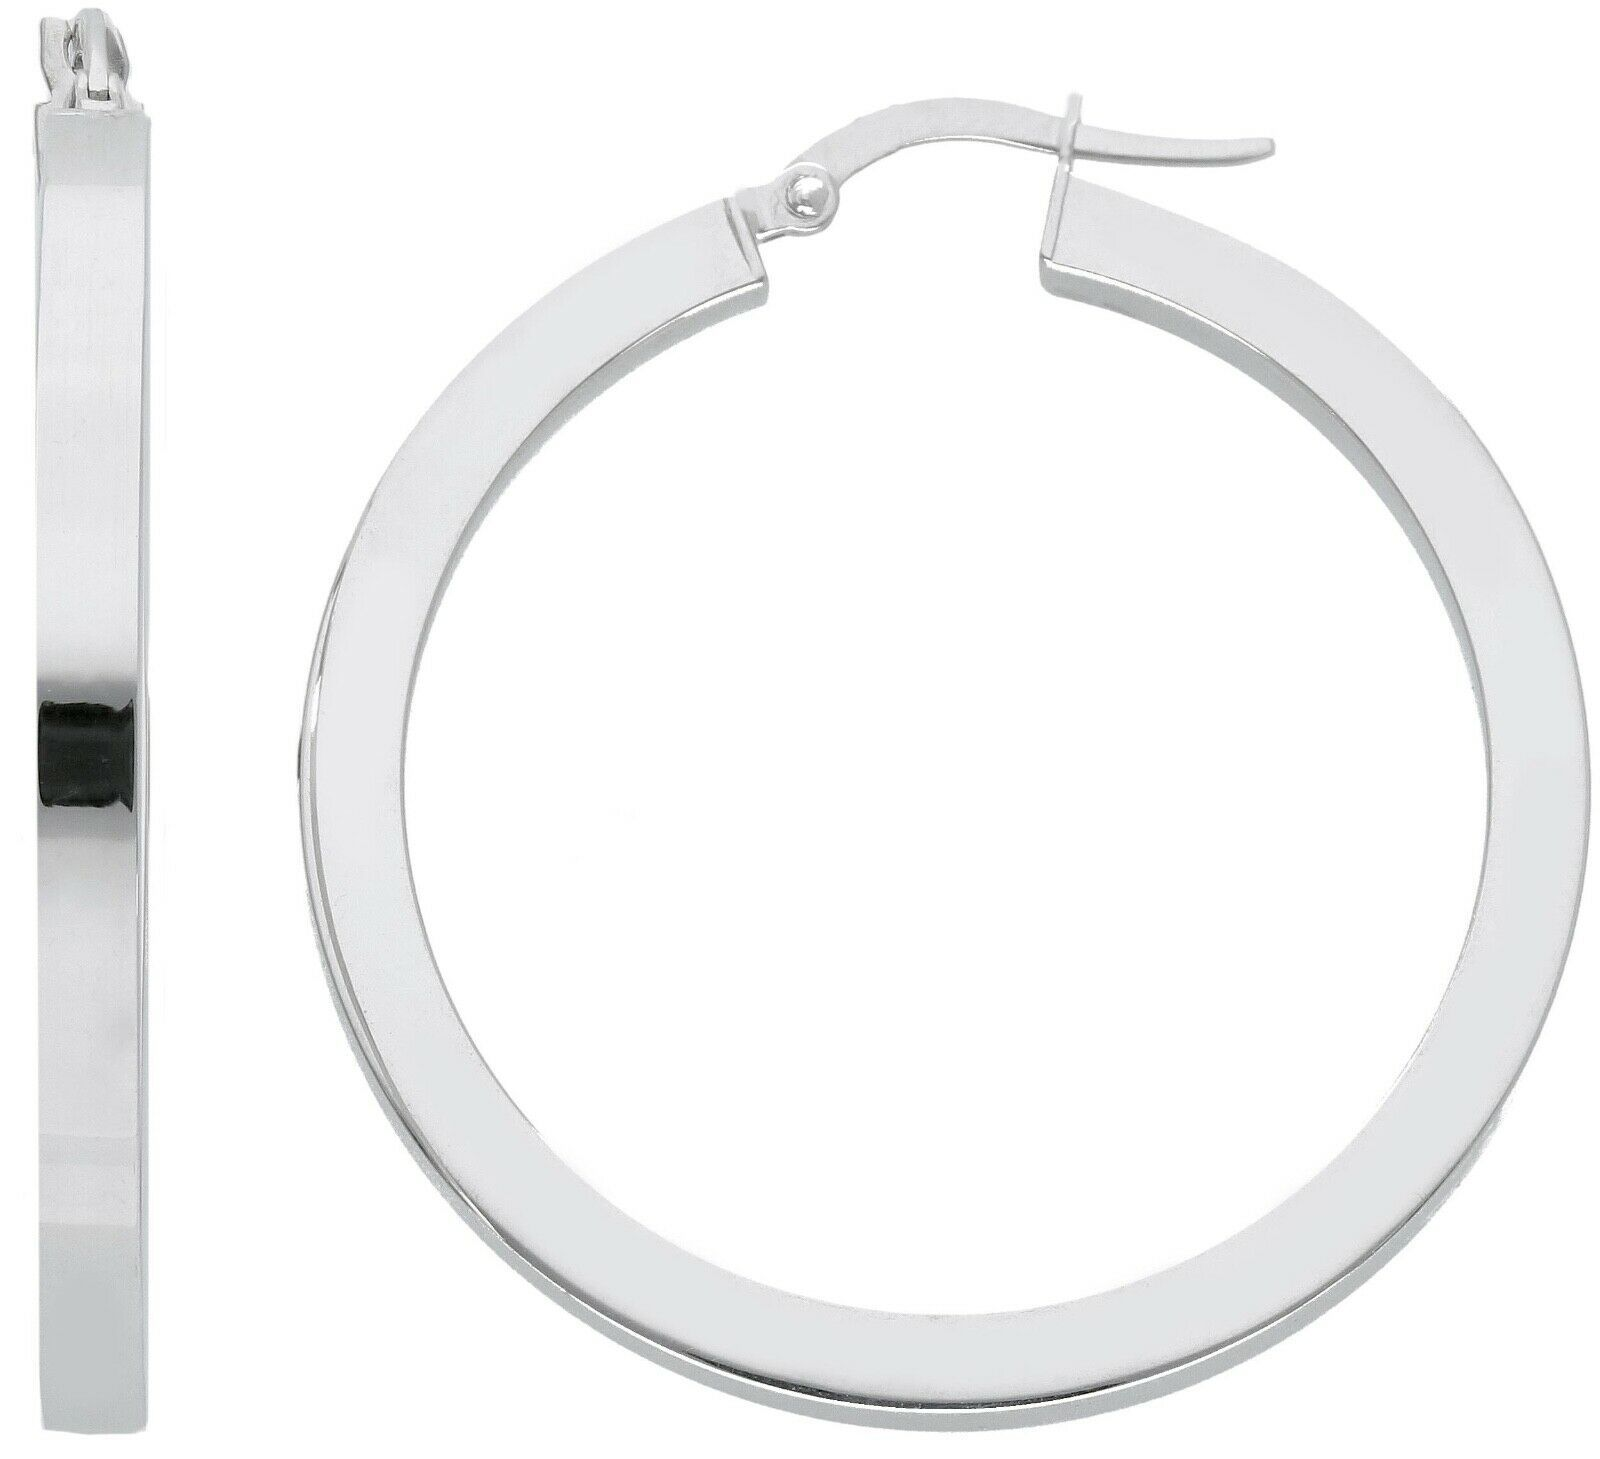 18K WHITE GOLD CIRCLE EARRINGS DIAMETER 30 MM WITH SQUARE TUBE     MADE IN ITALY